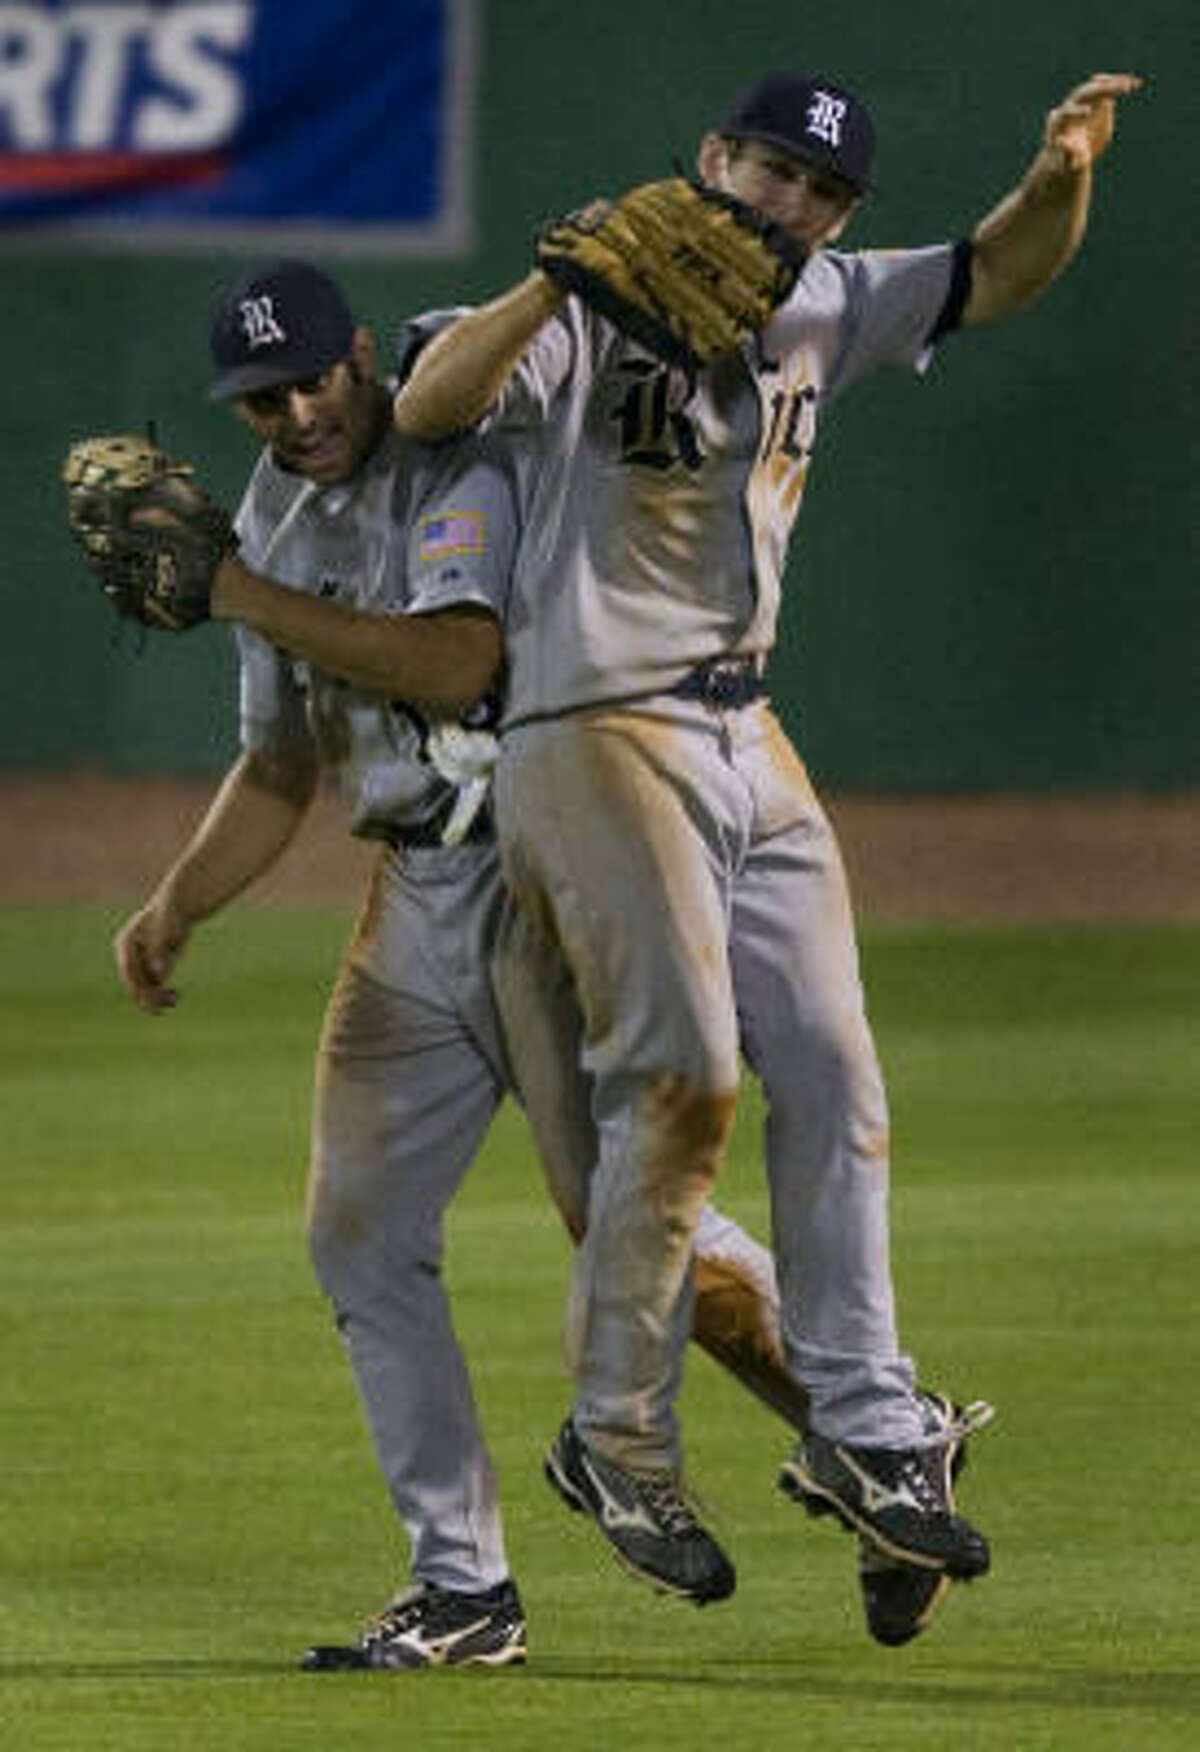 Rice's Chad Mozingo, right, and Michael Fuda celebrate the final out in the Owls' 7-5 win.